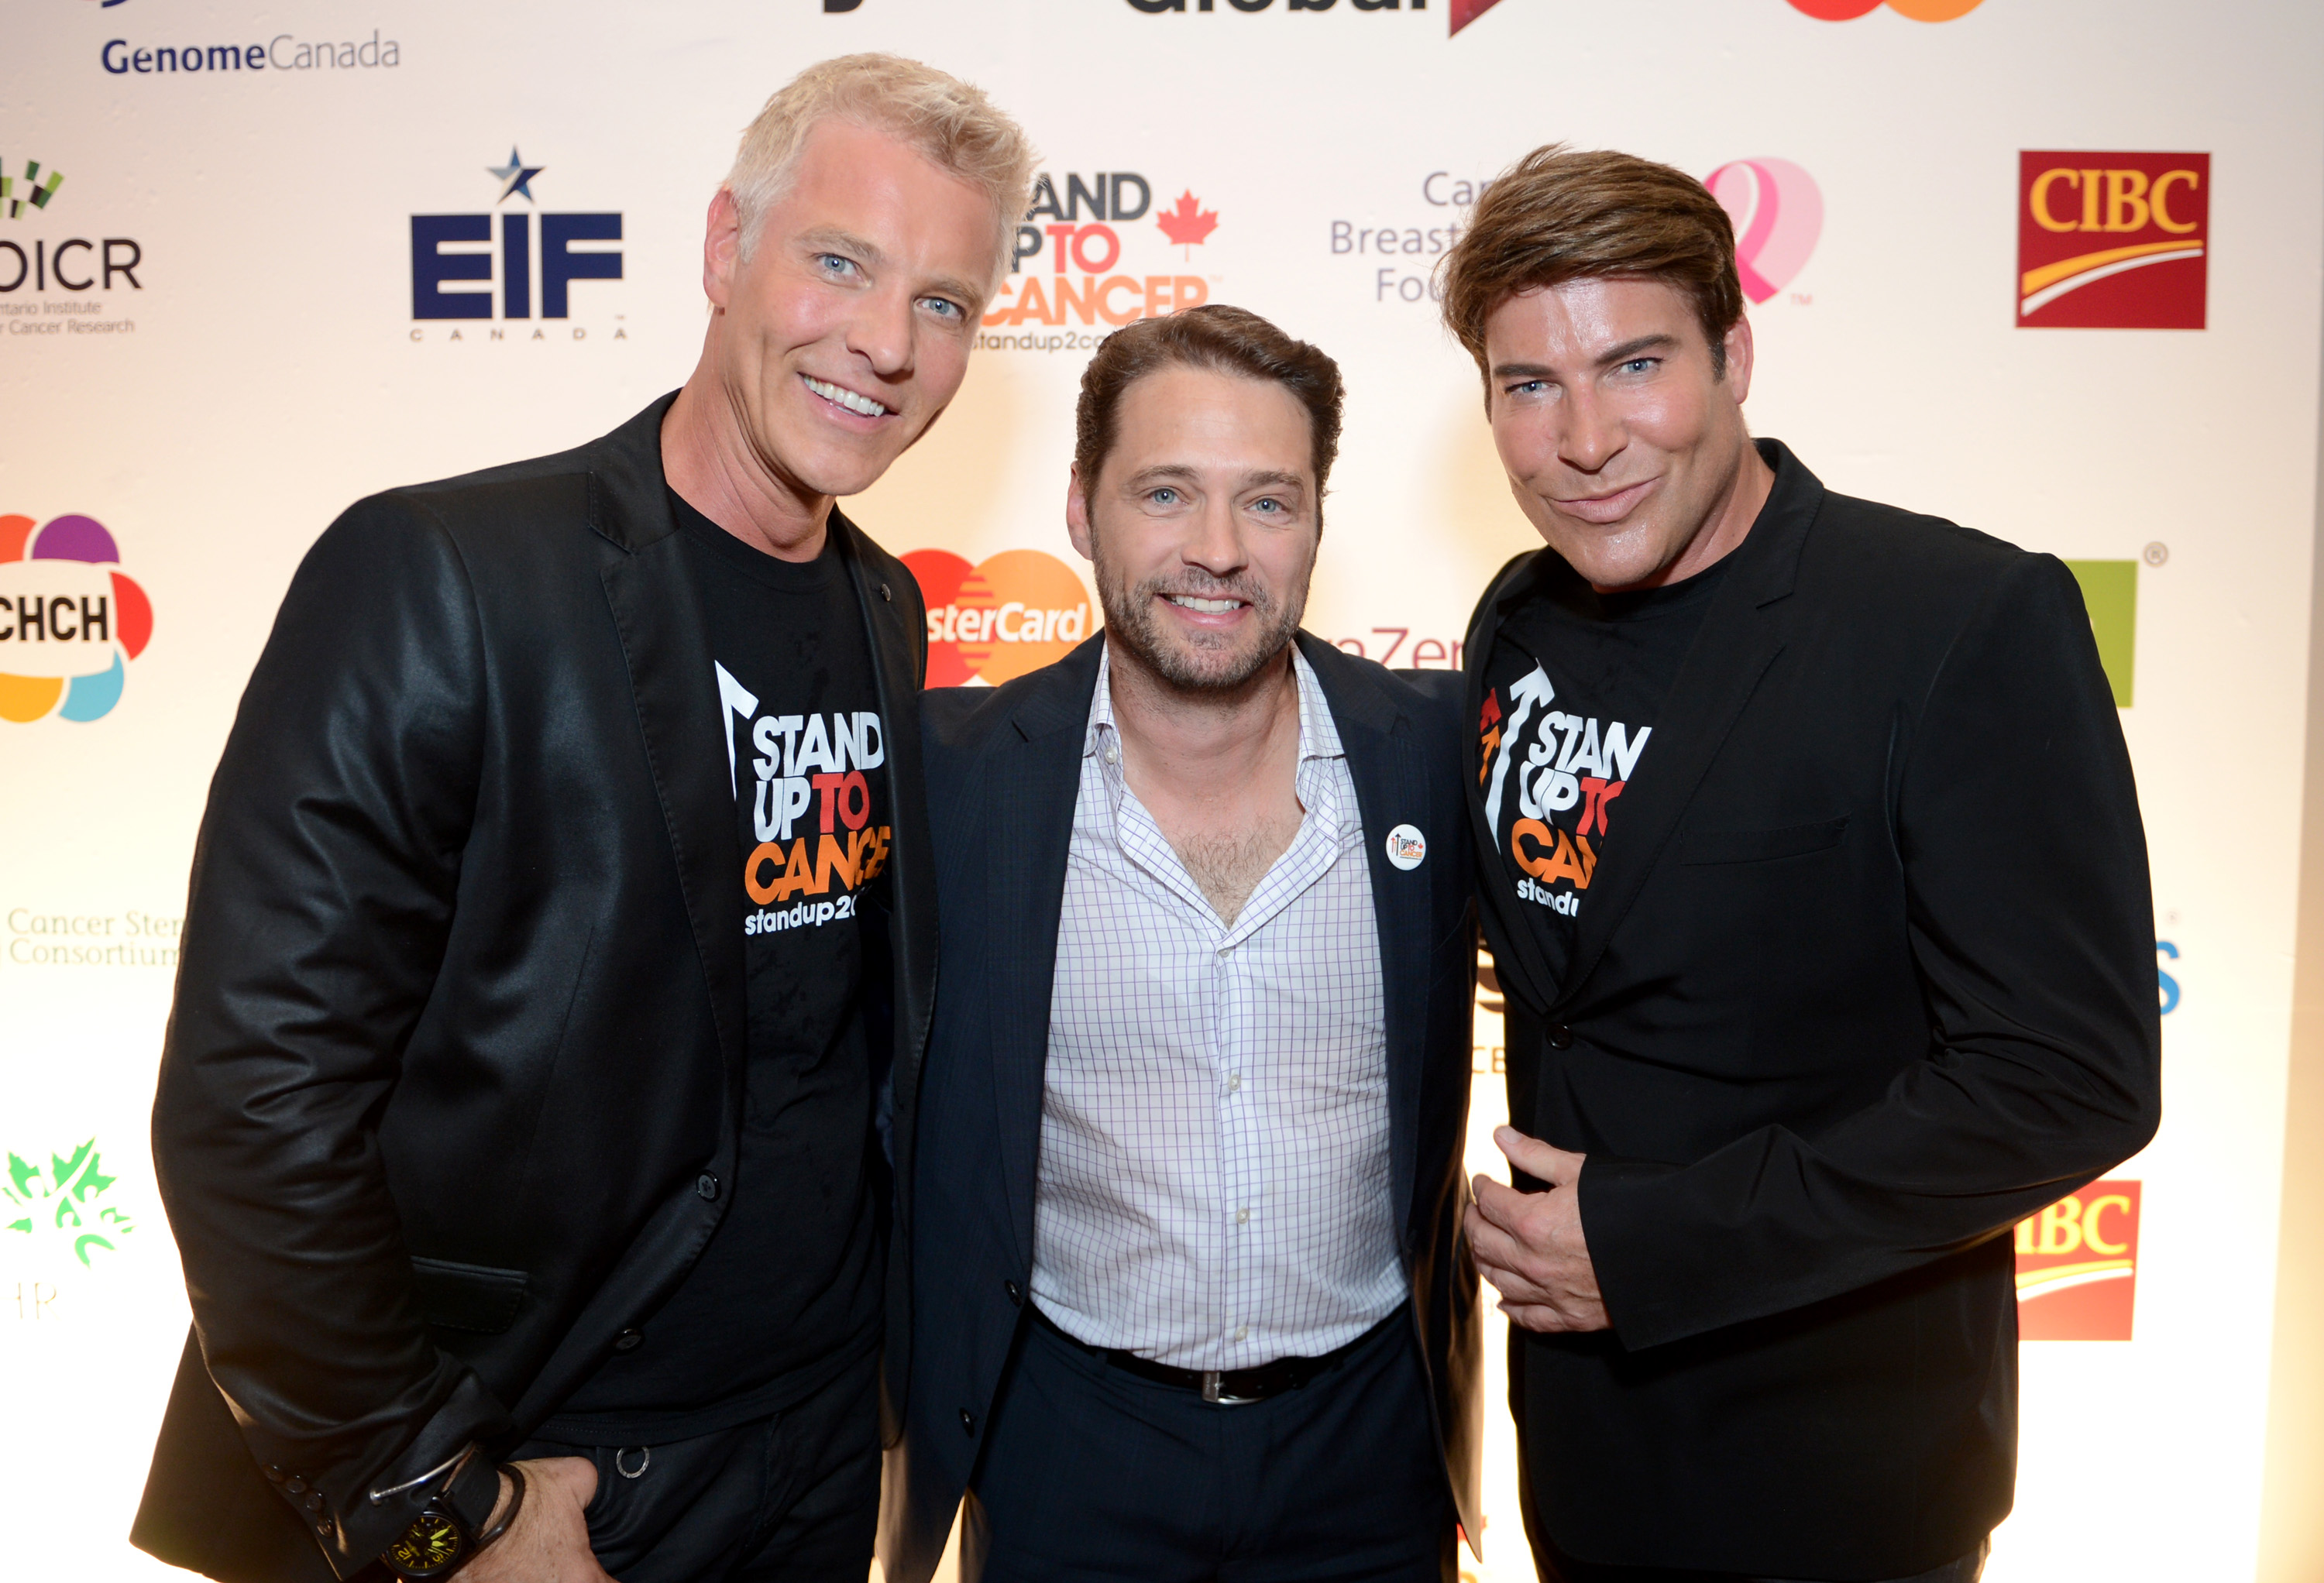 Steven Sabados, and from left, Jason Priestley and Chris Hyndman attend Stand Up To Cancer Canada on Friday, Sept. 5, 2014, in Toronto